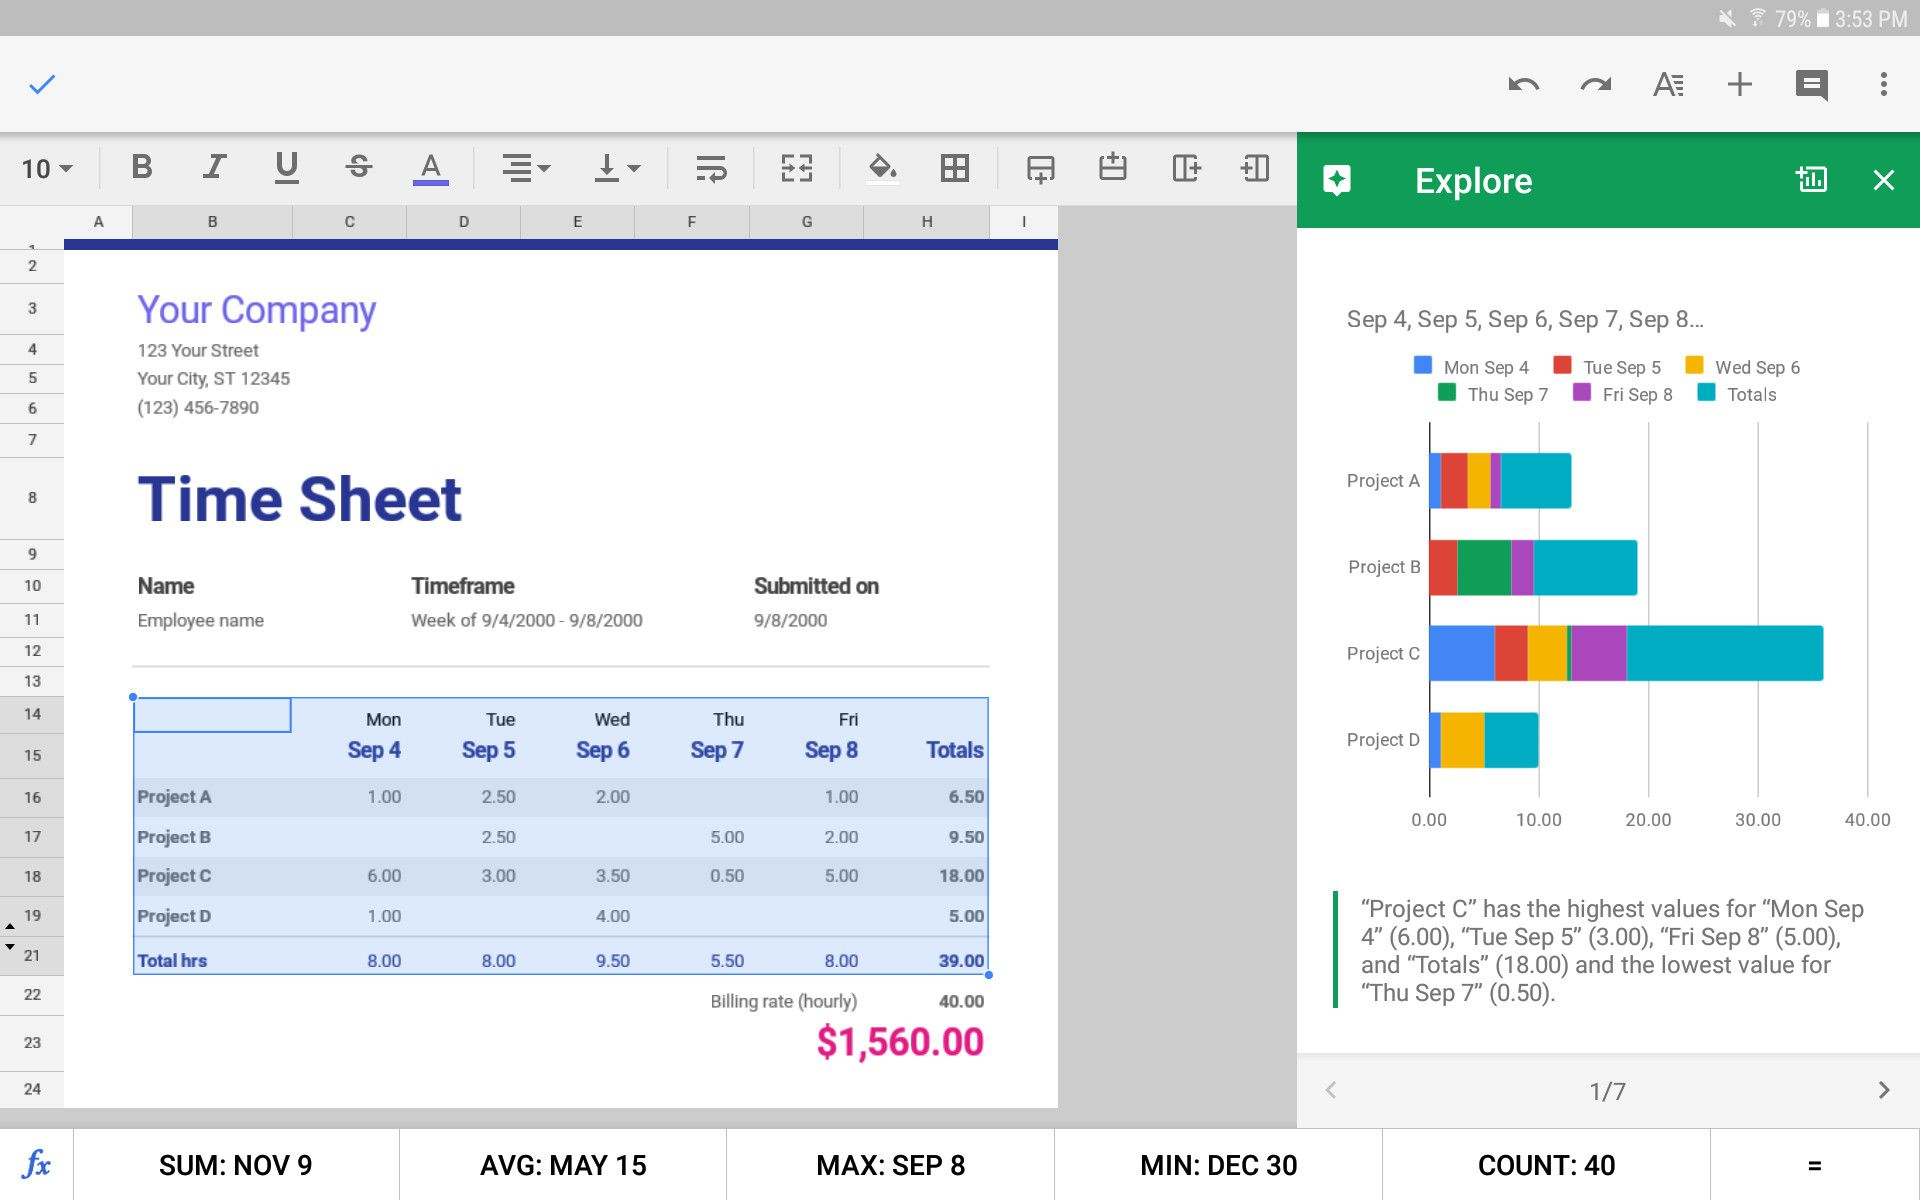 Full Size of Inventory Spreadsheet Simple Projected Income Statement Template Free 3 Year Google Sheets App